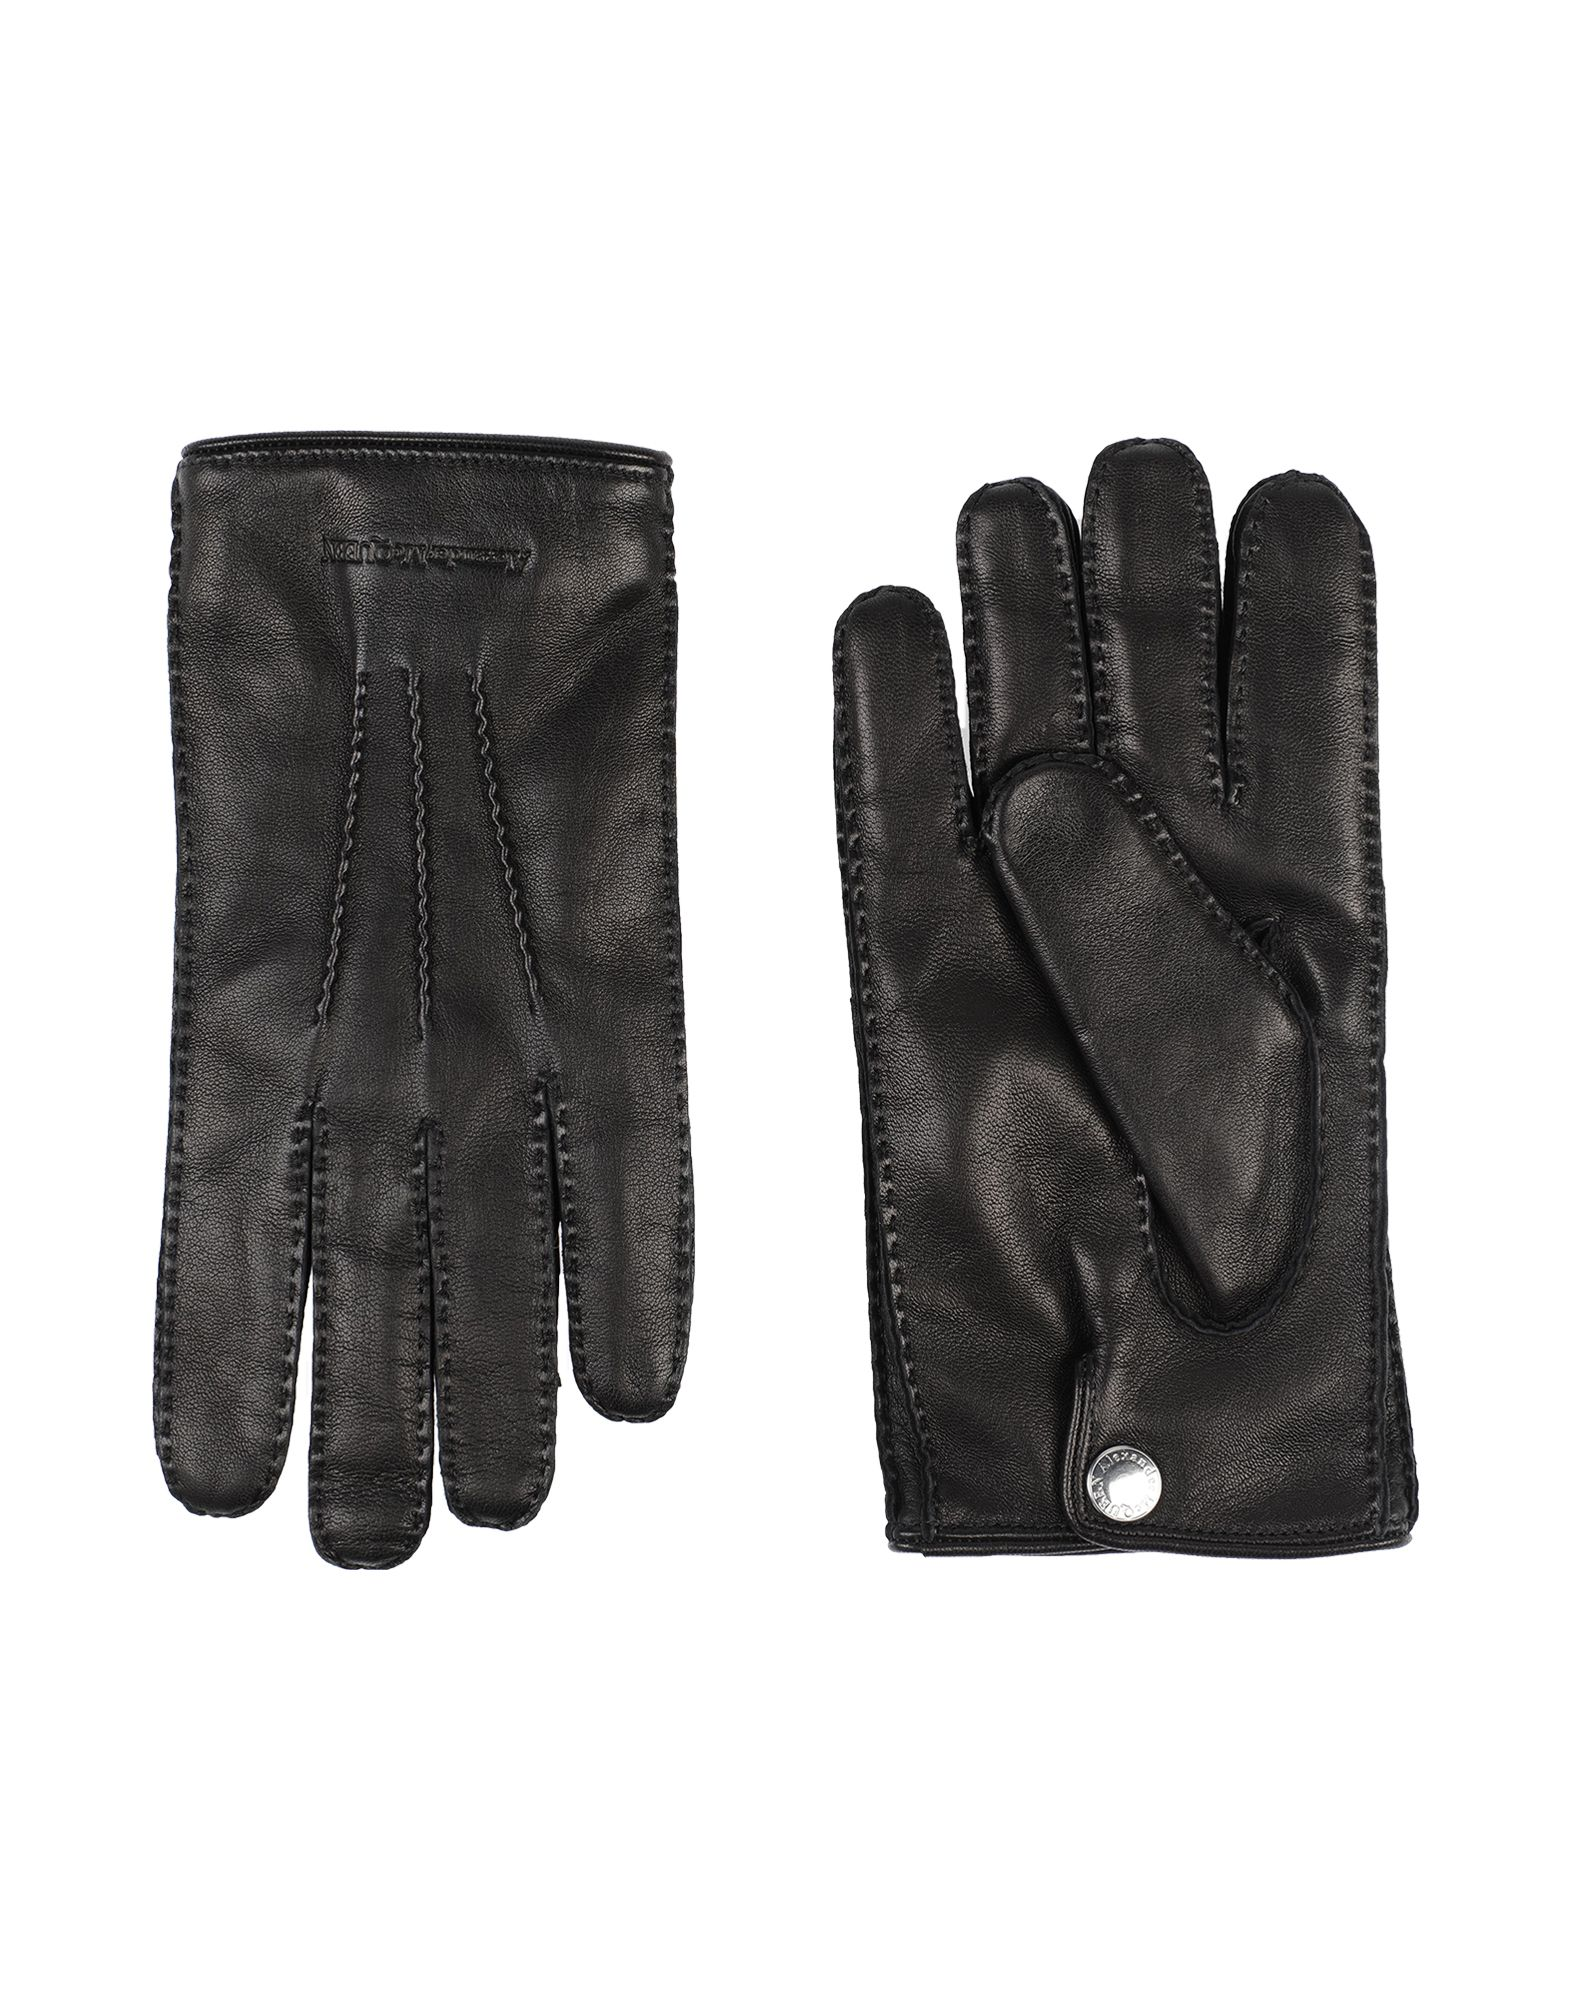 ALEXANDER MCQUEEN Gloves. leather, logo, solid color, fully lined, contains non-textile parts of animal origin. 100% Soft Leather